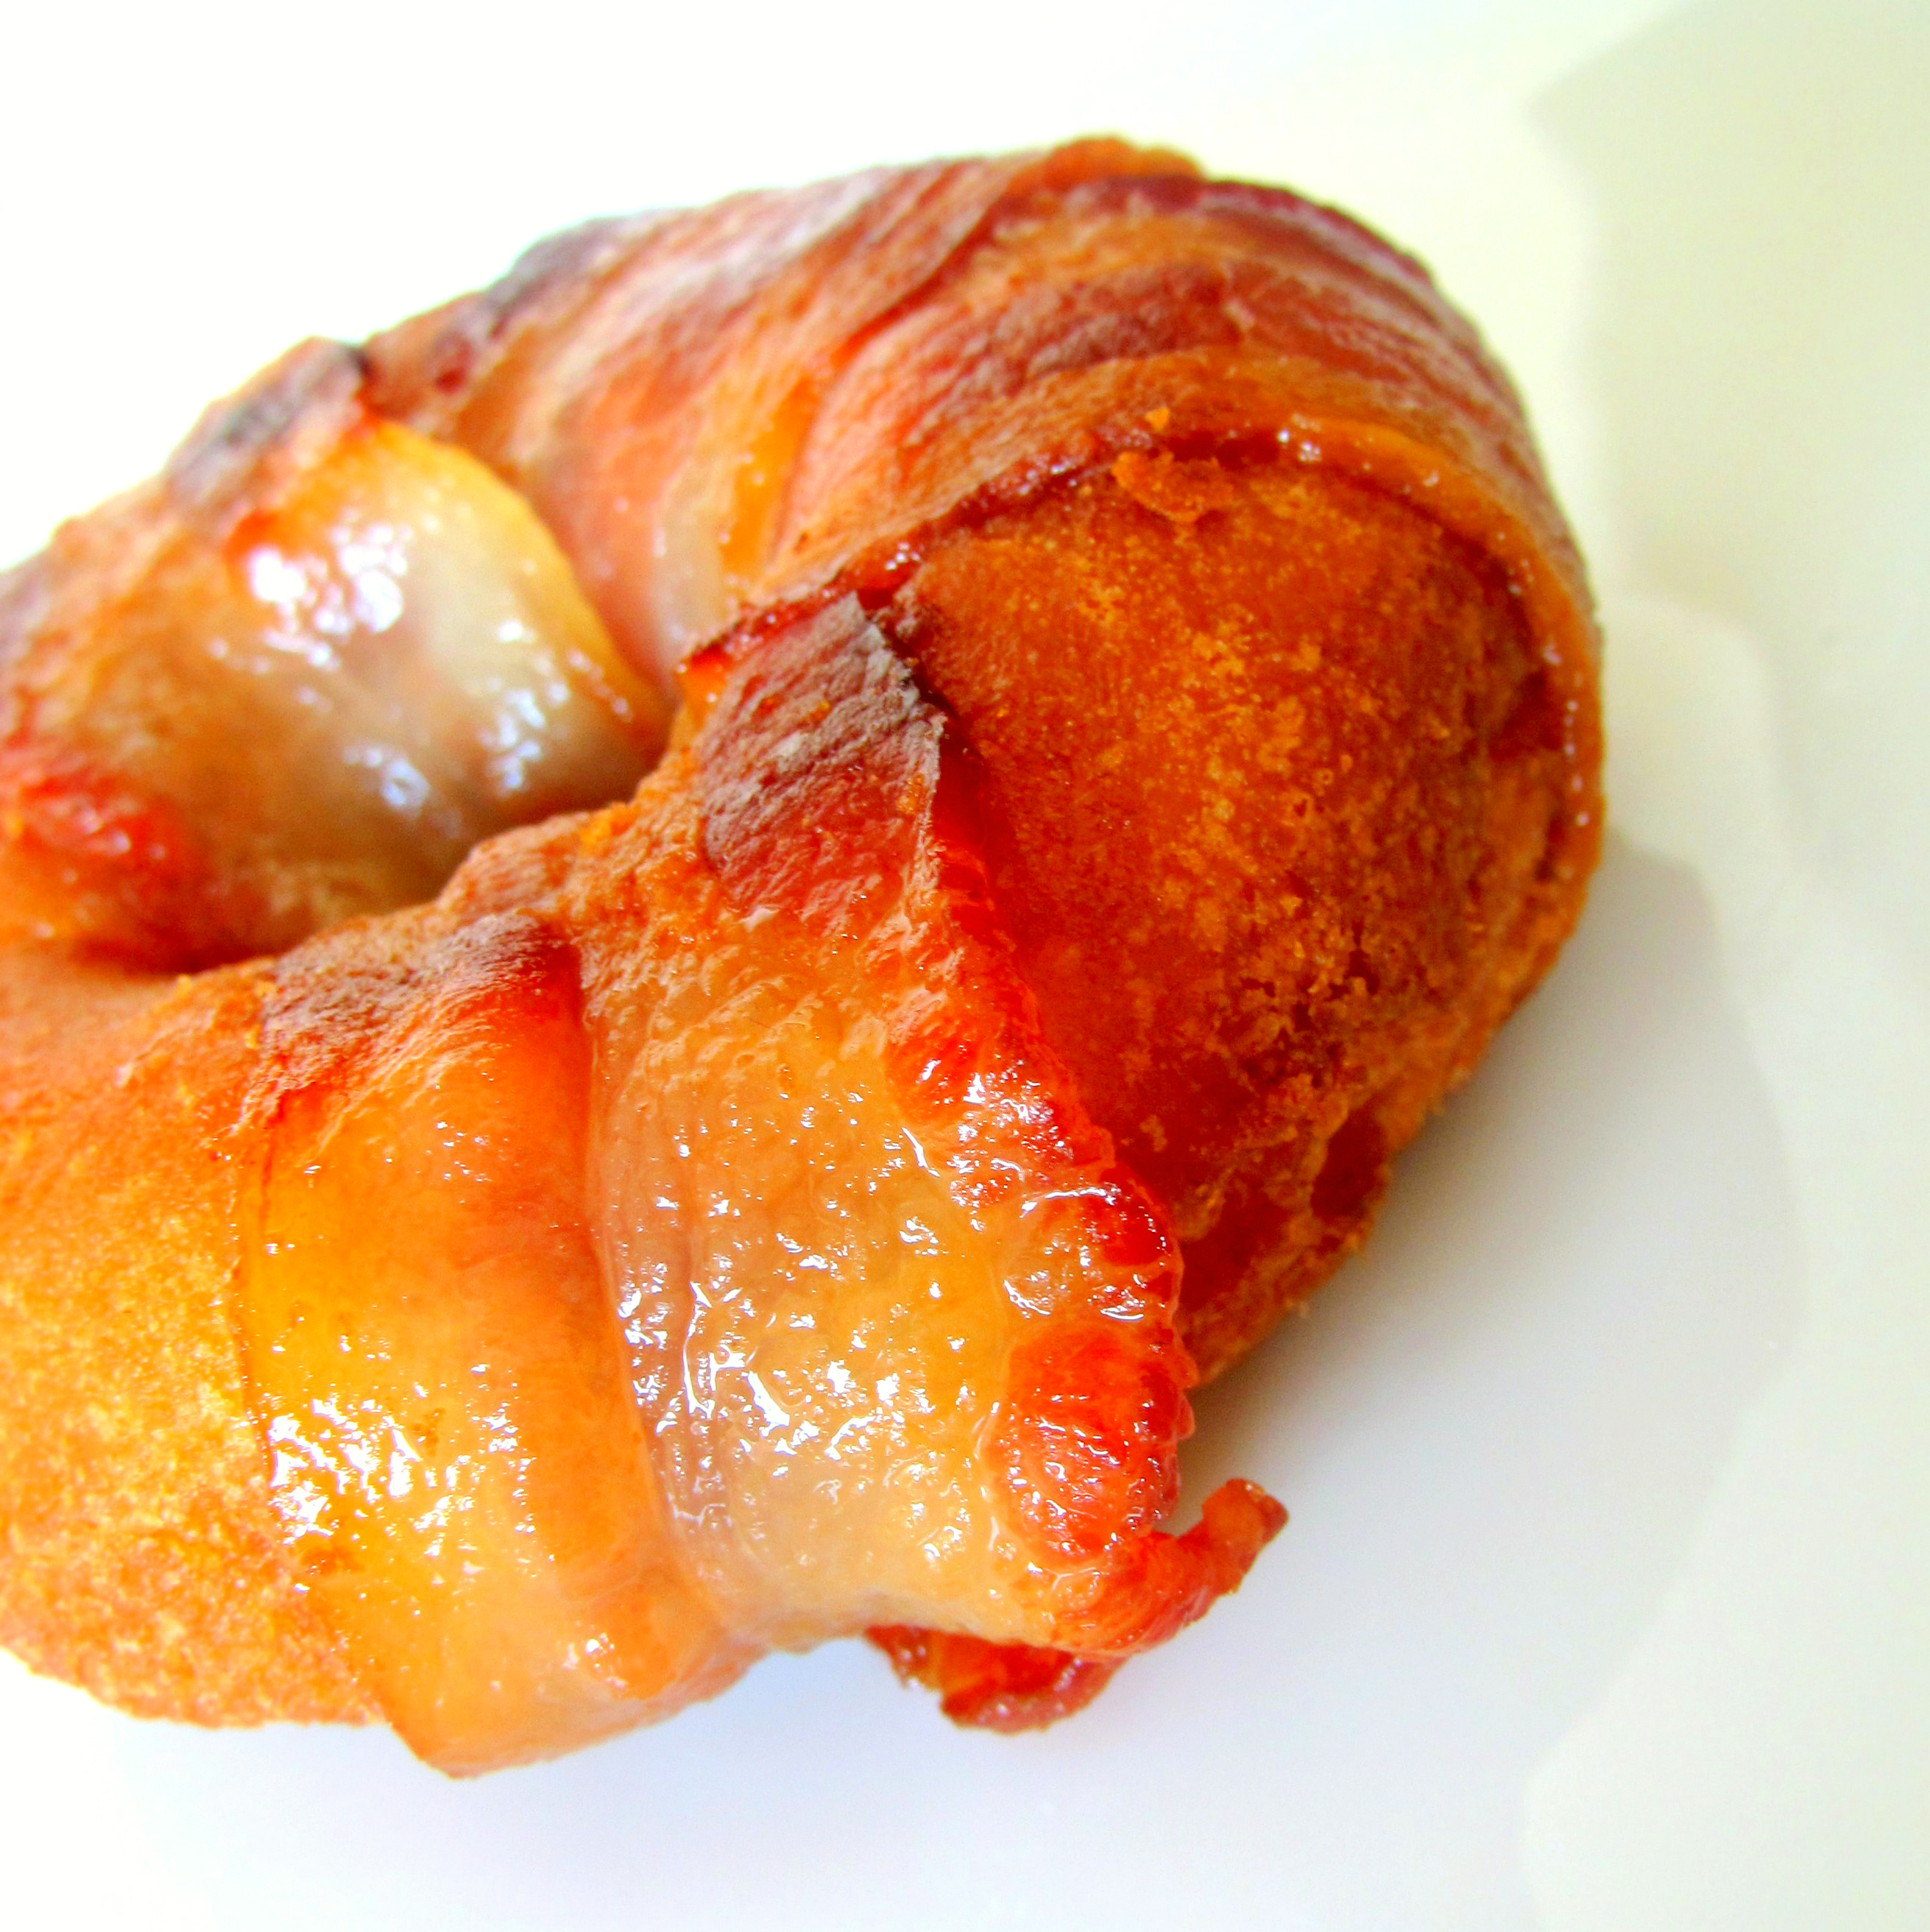 BAKED BACON-WRAPPED DOUGHNUT - Heaven in Your Hand!